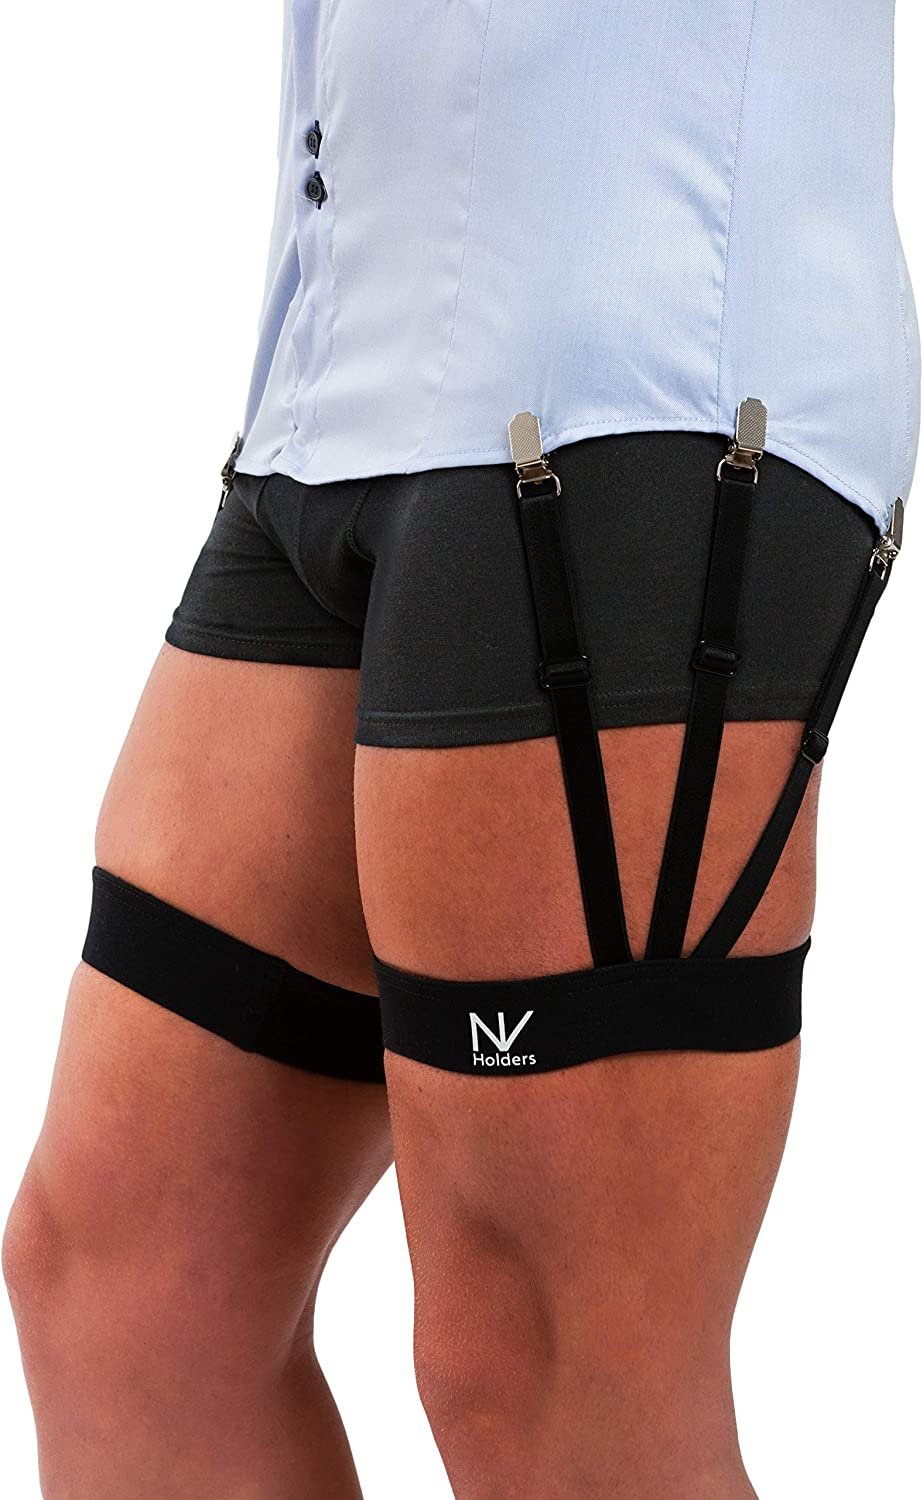 Improved NV HOLDERS 2.0, with improved clasps; premium shirt stays, shirt holders, shirt garters, shirt tuckers for men